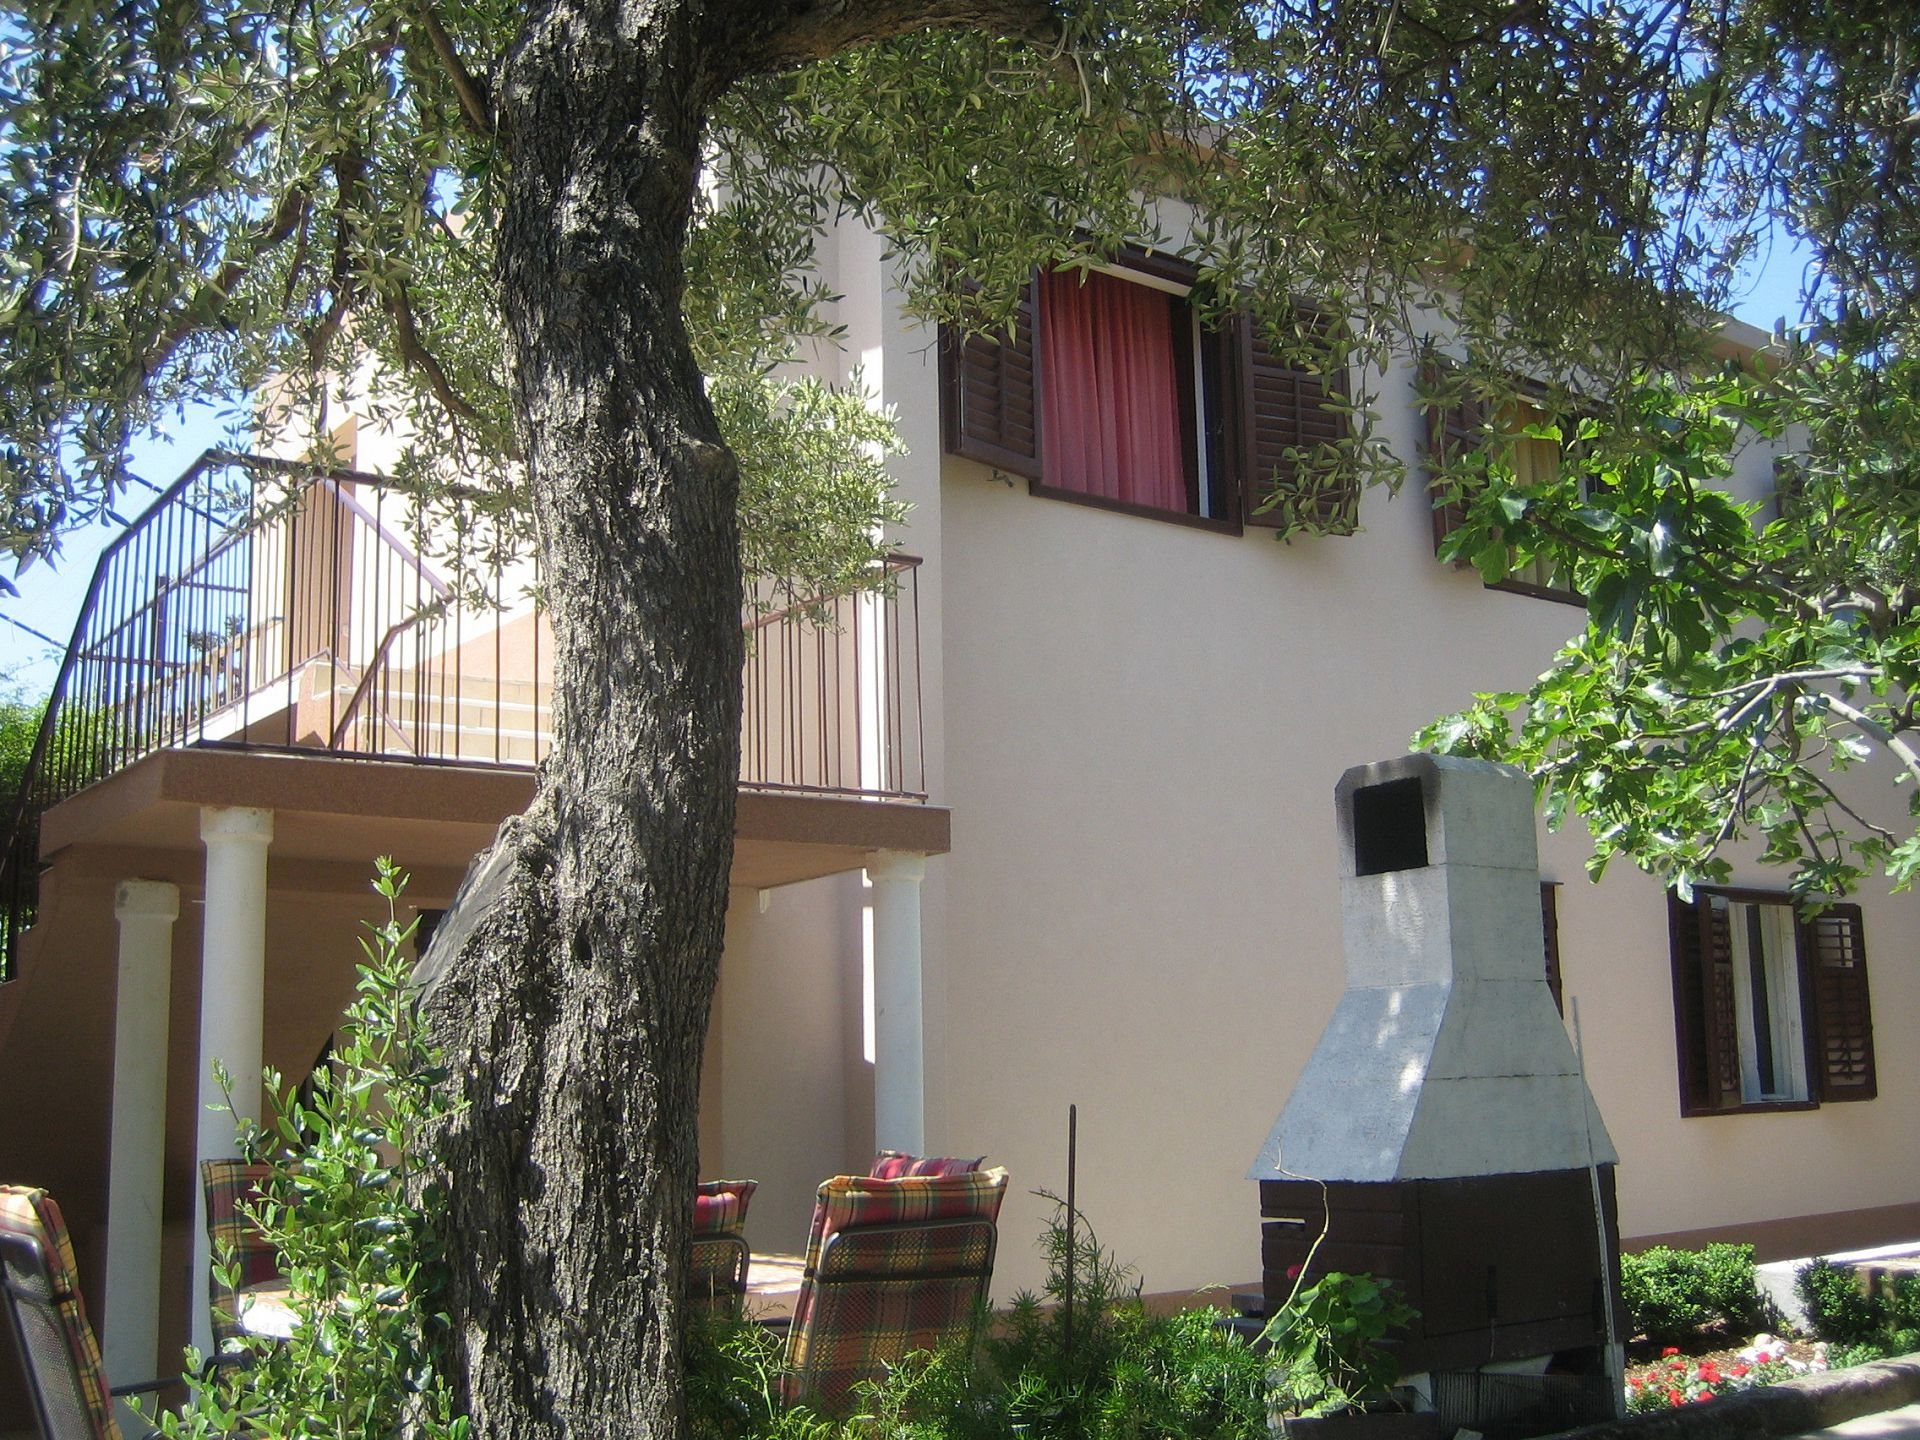 8134  - Podgora - Apartments Croatia